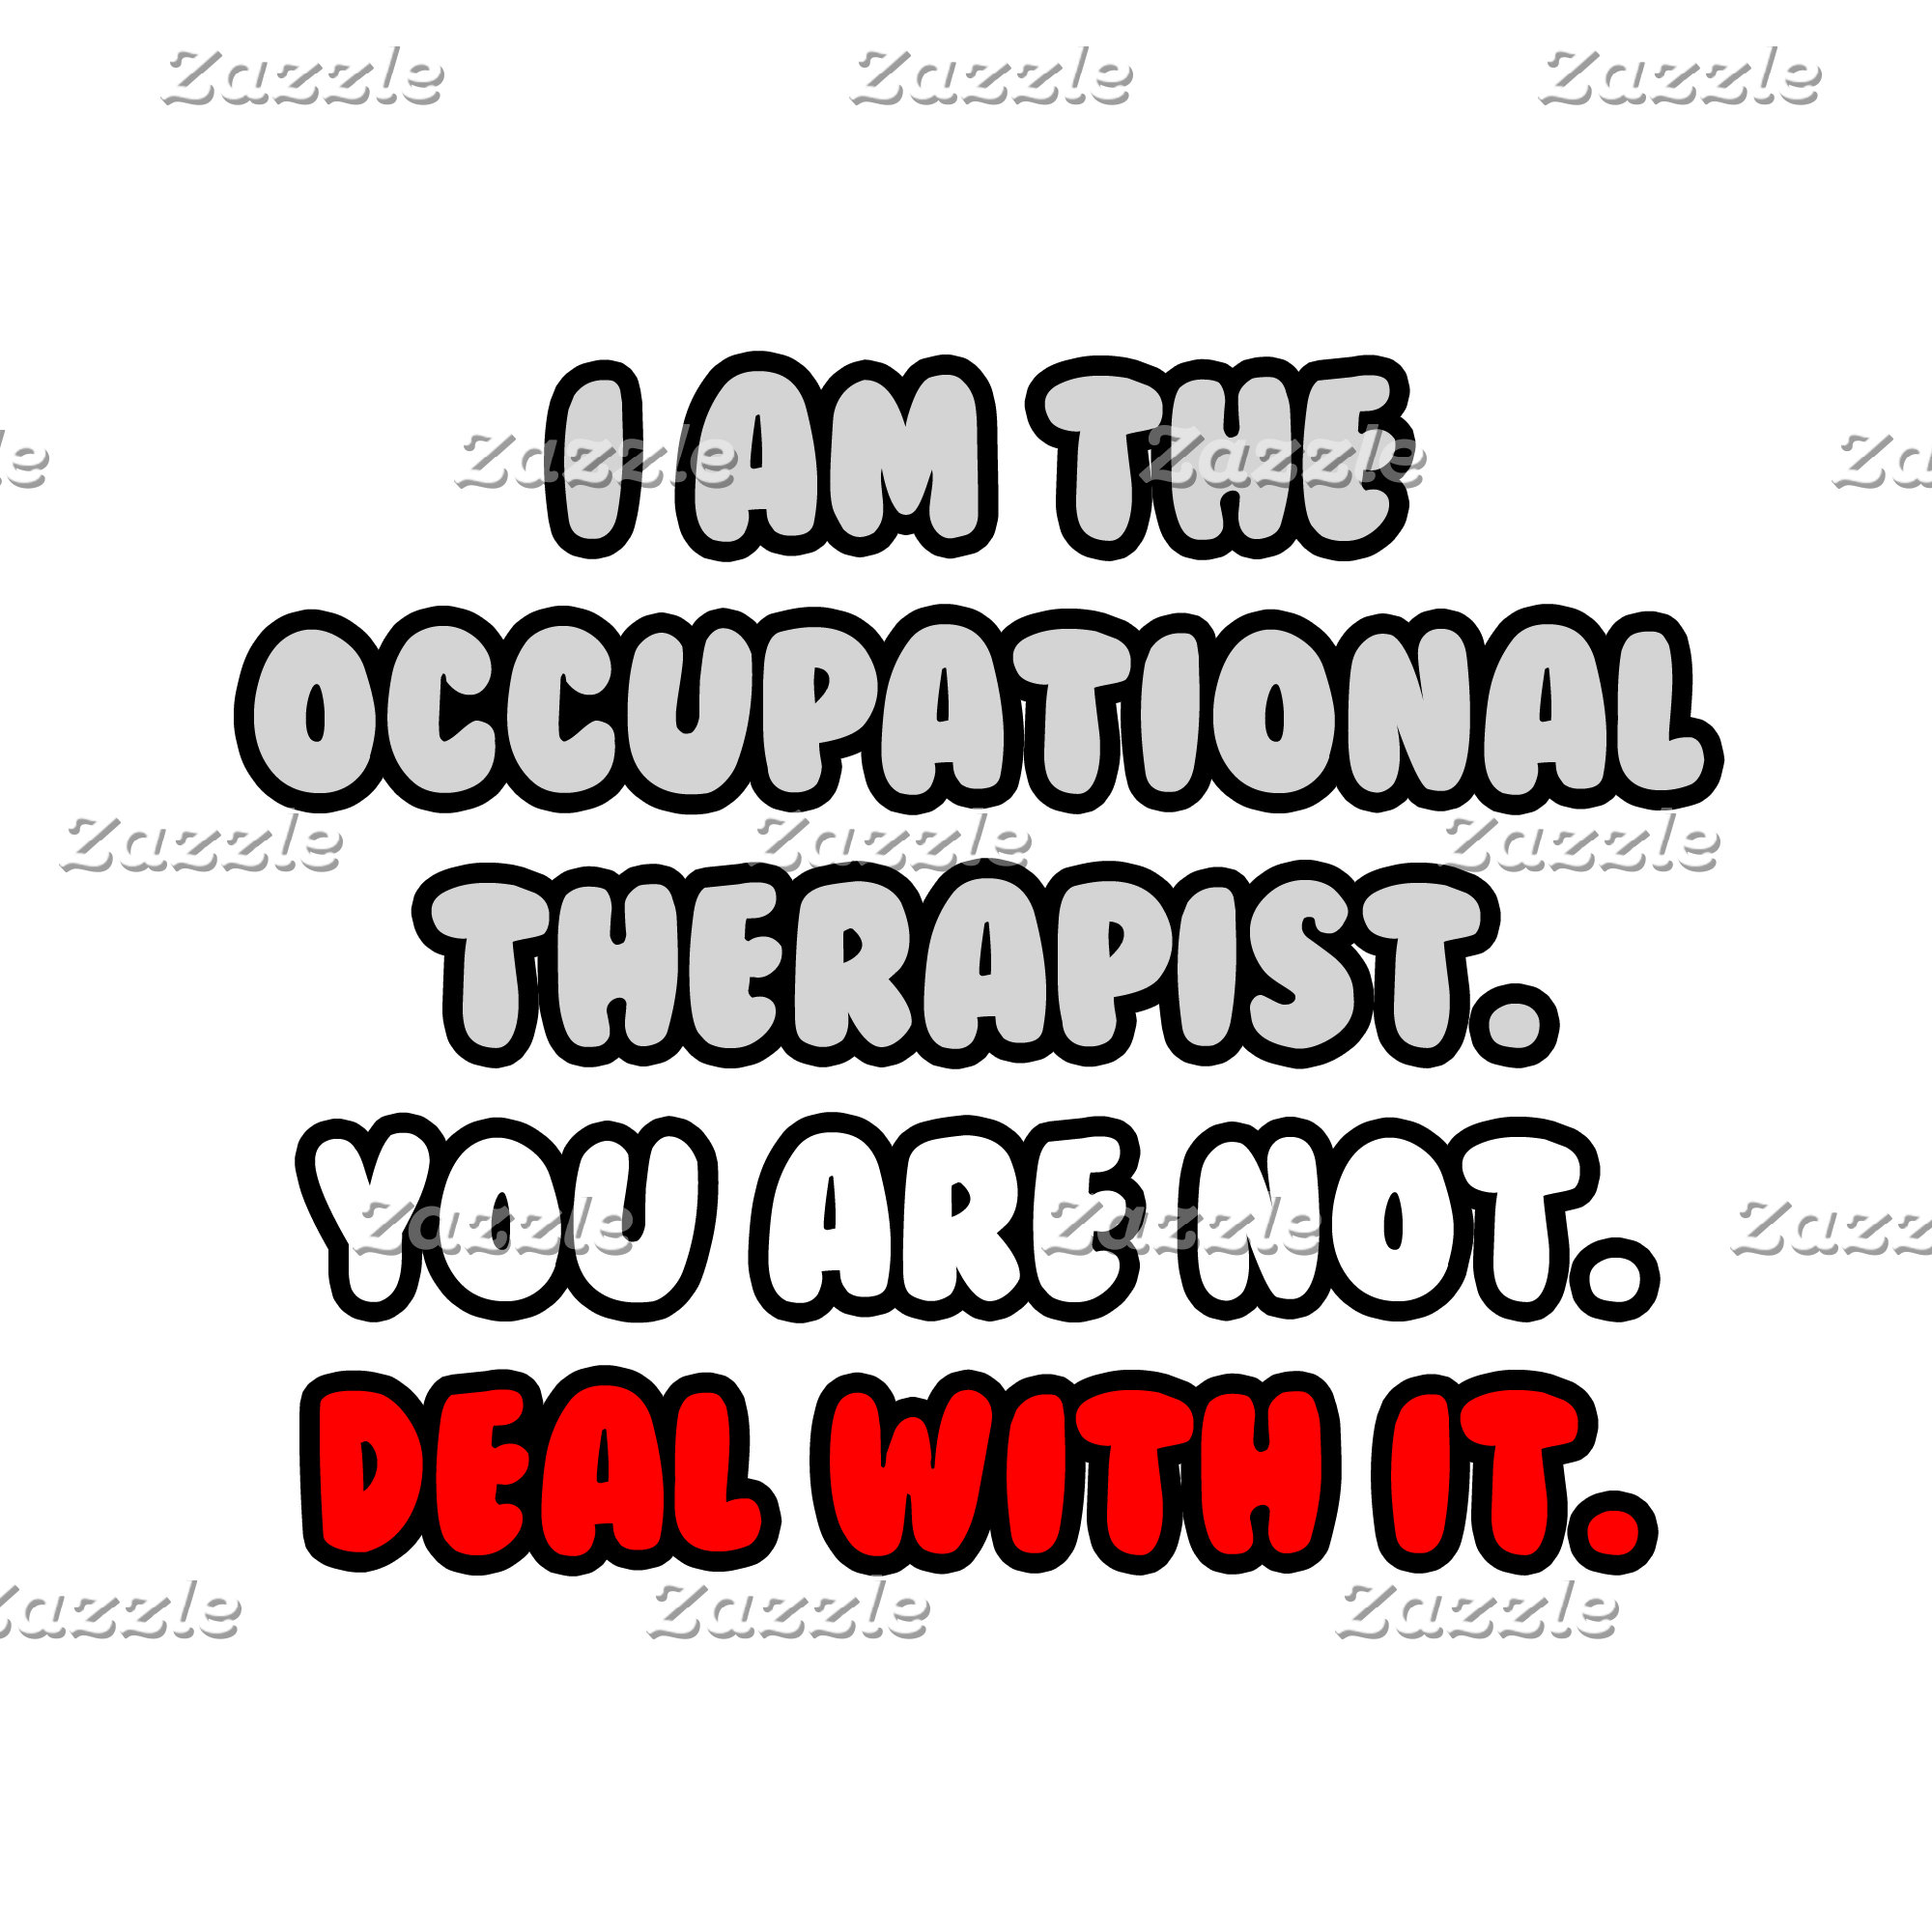 Deal With It .. Funny Occupational Therapist